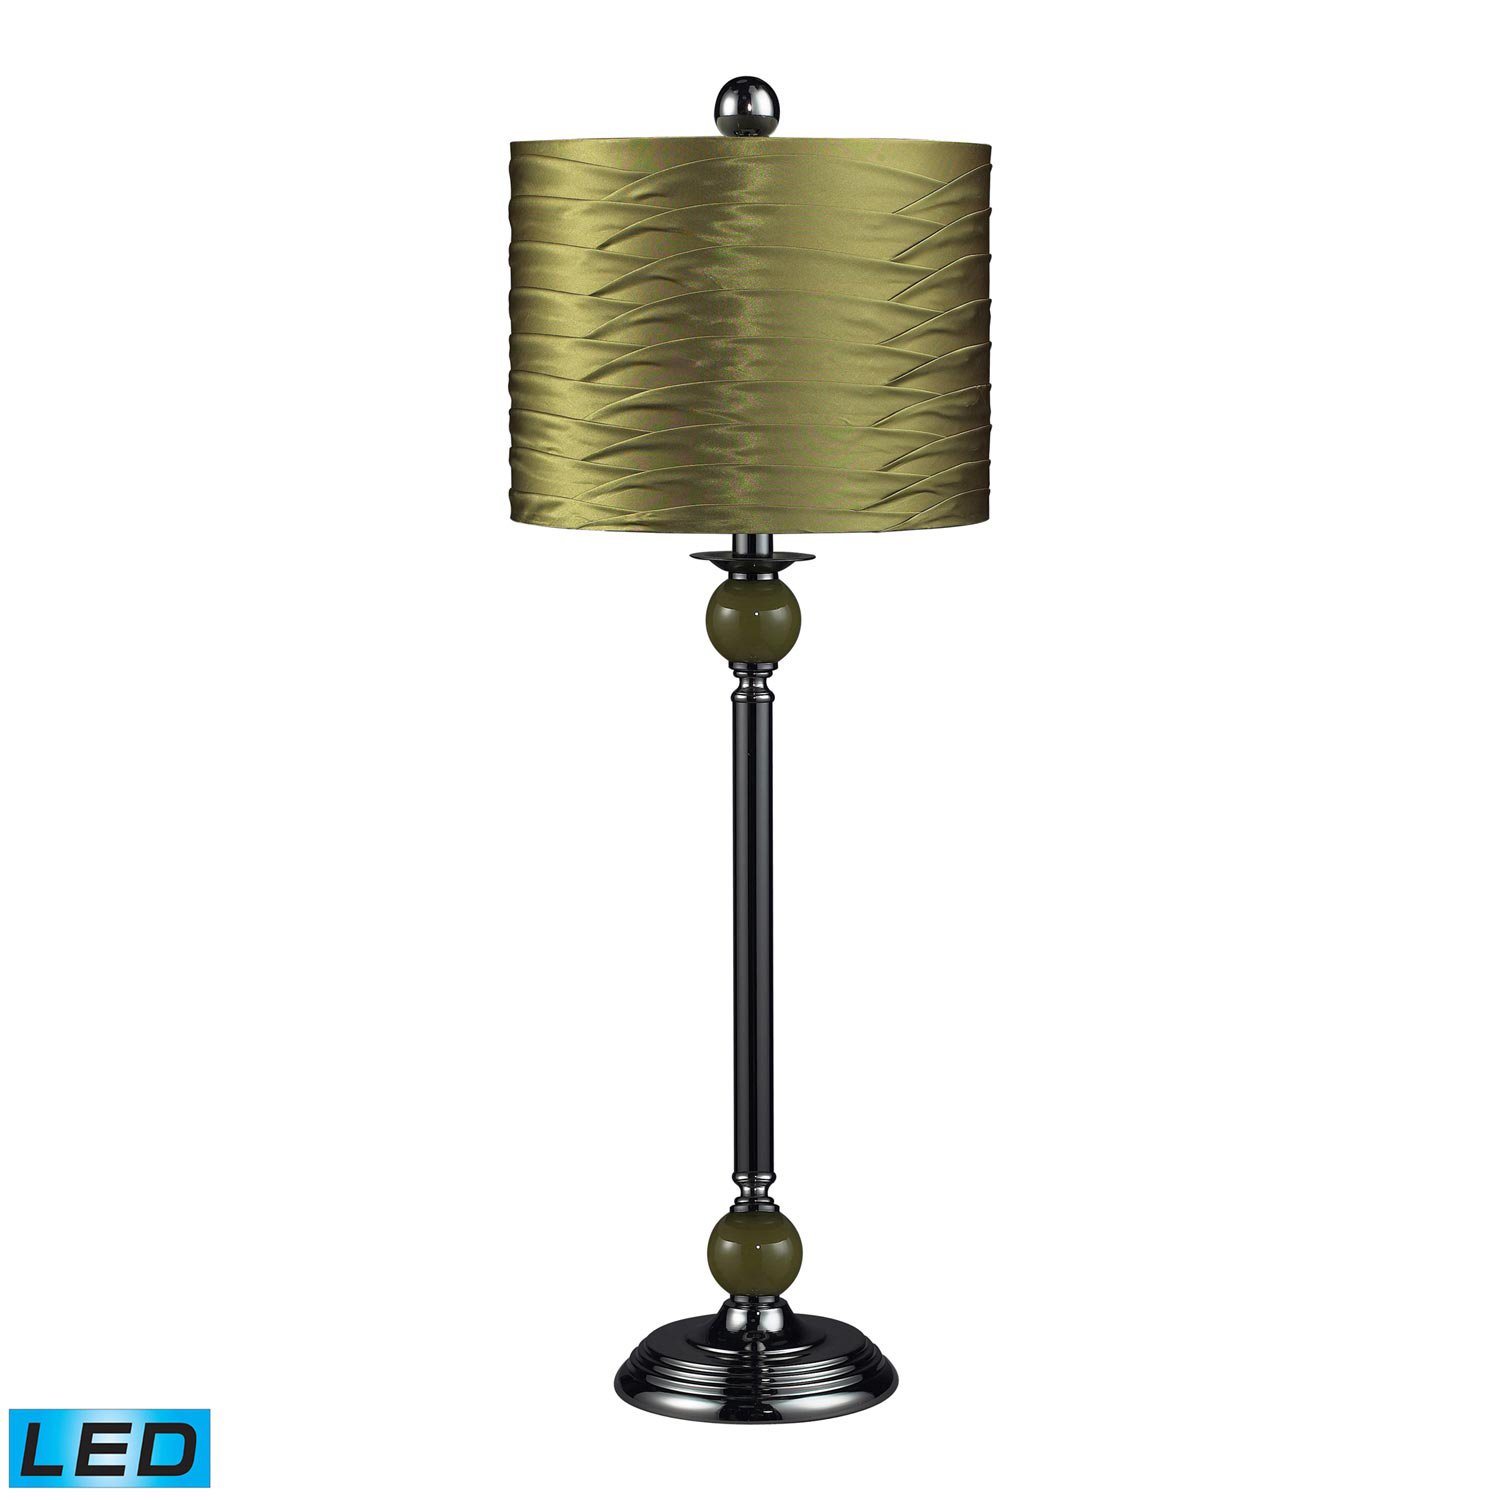 Elk Lighting 111-1115-LED Carrington Table Lamp - Satin Nickel